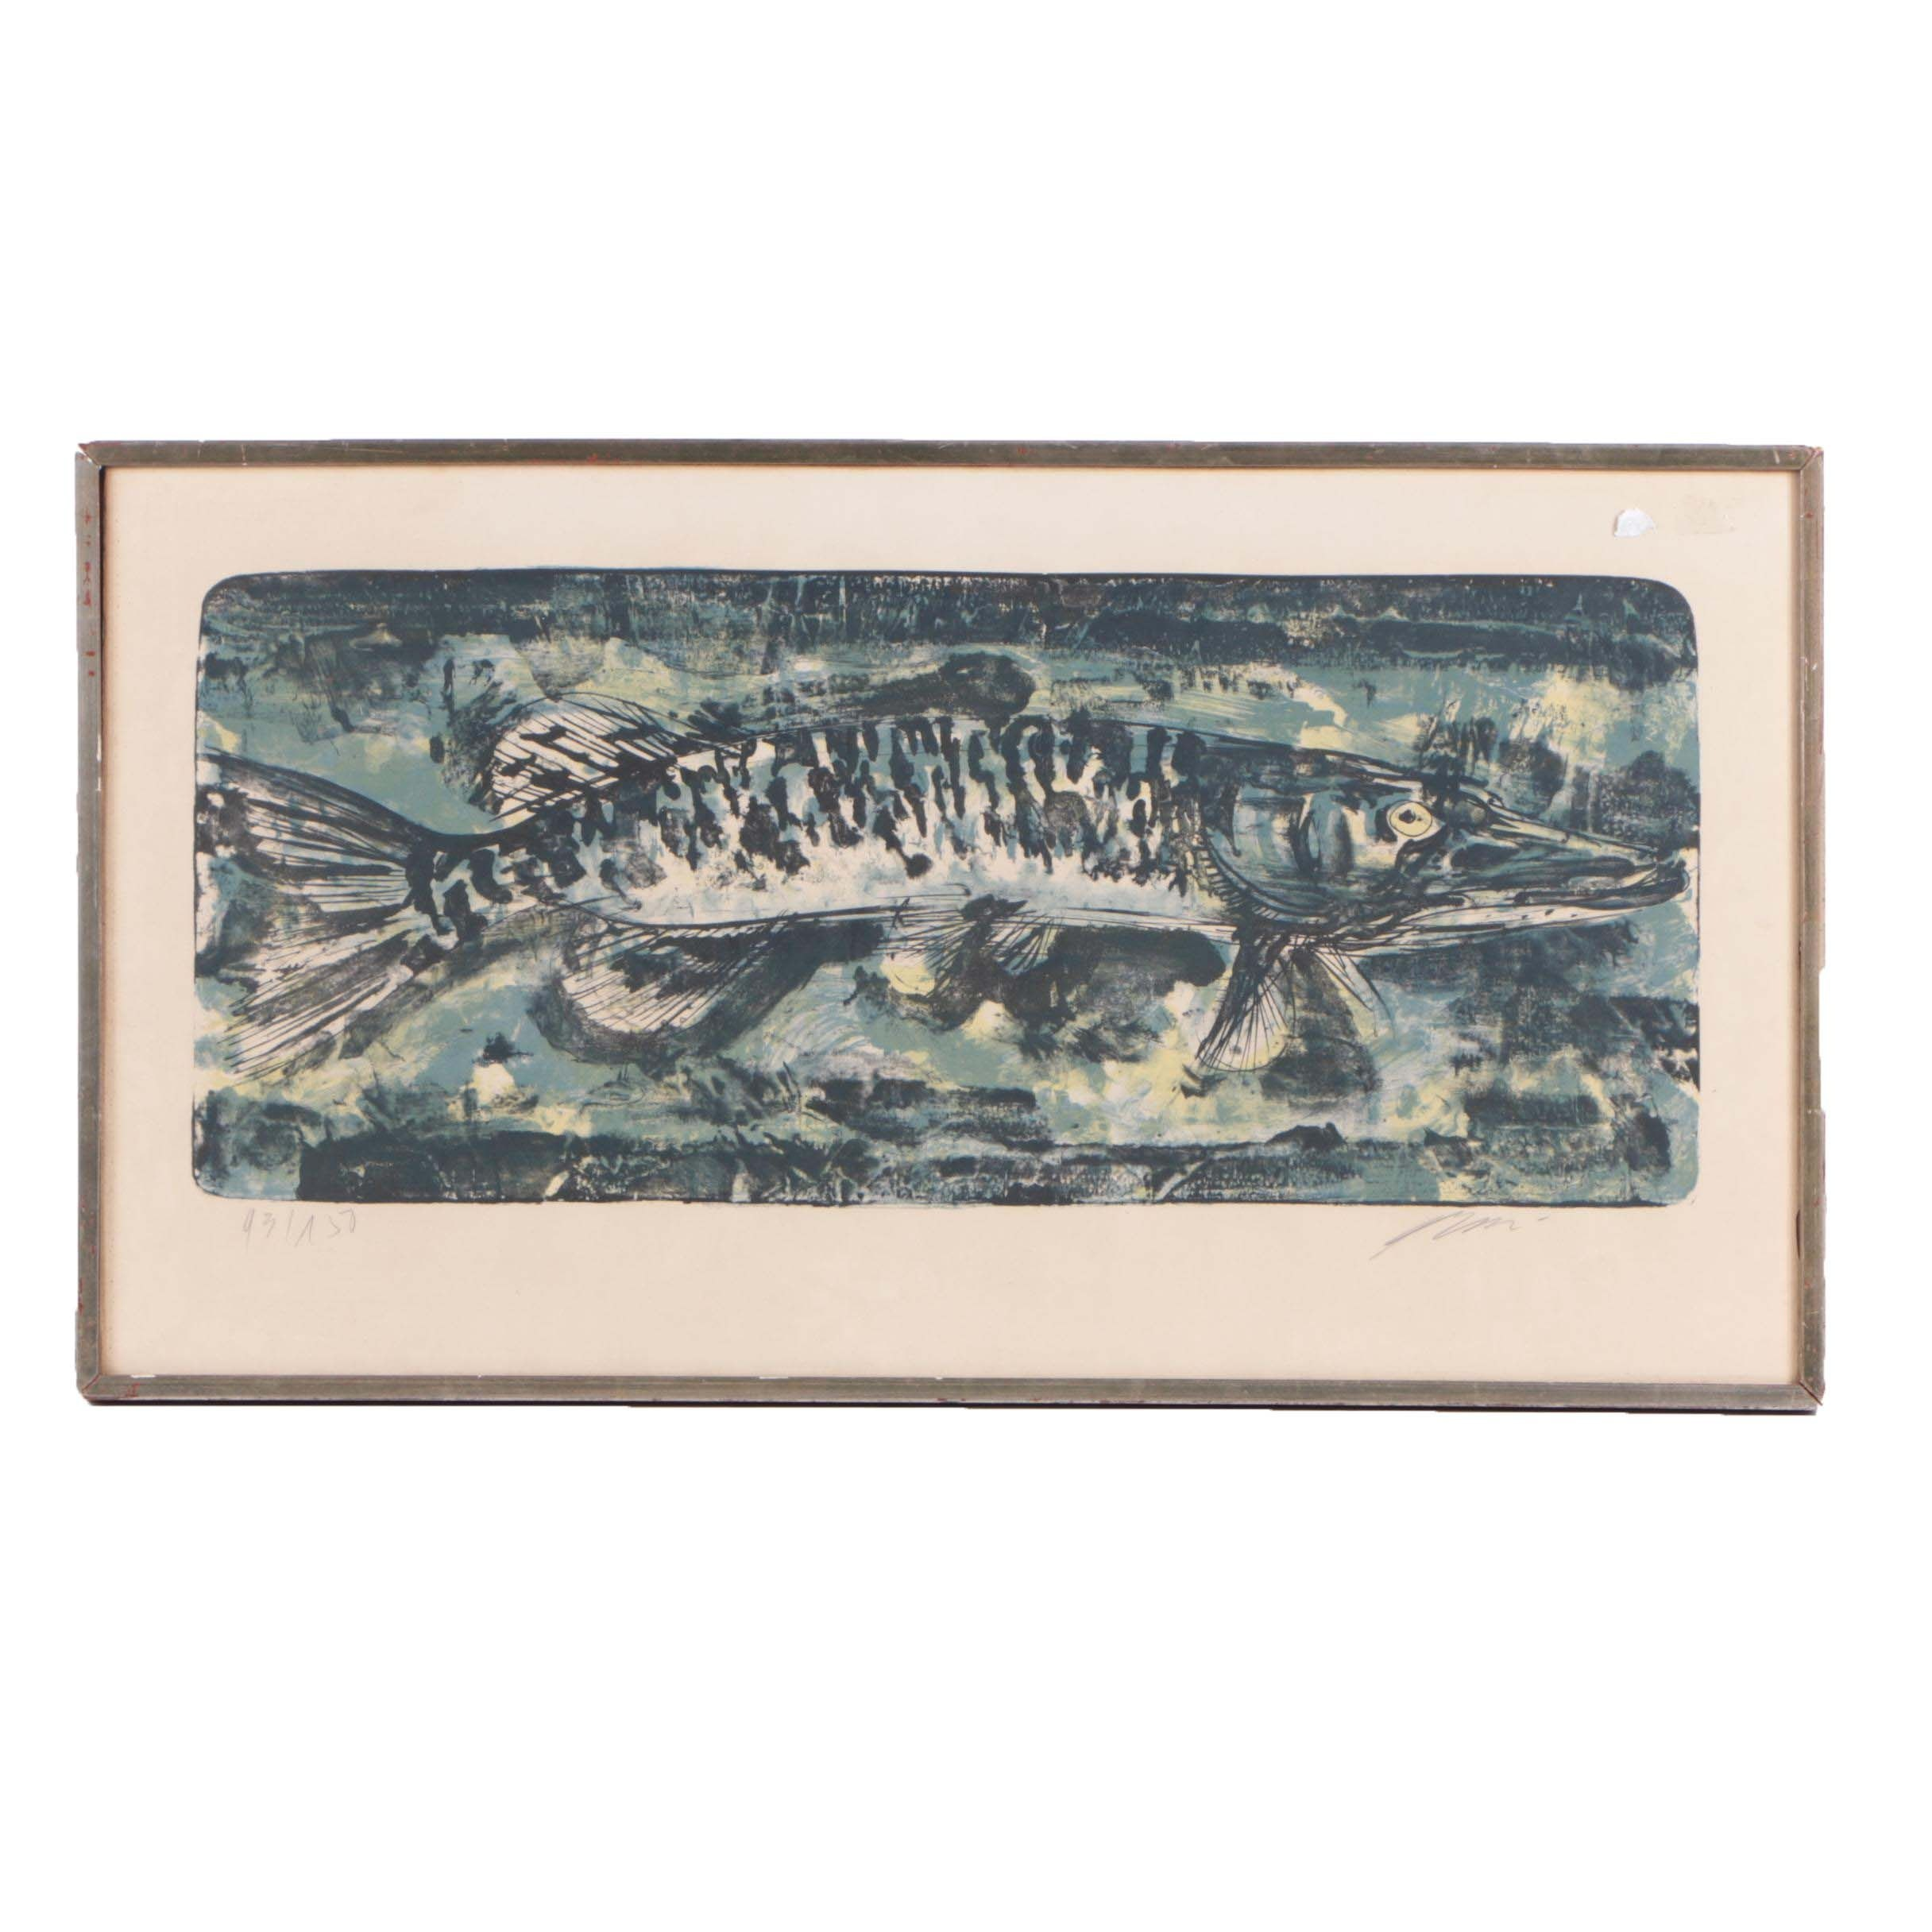 Vintage Limited Edition Lithograph Print of a Fish